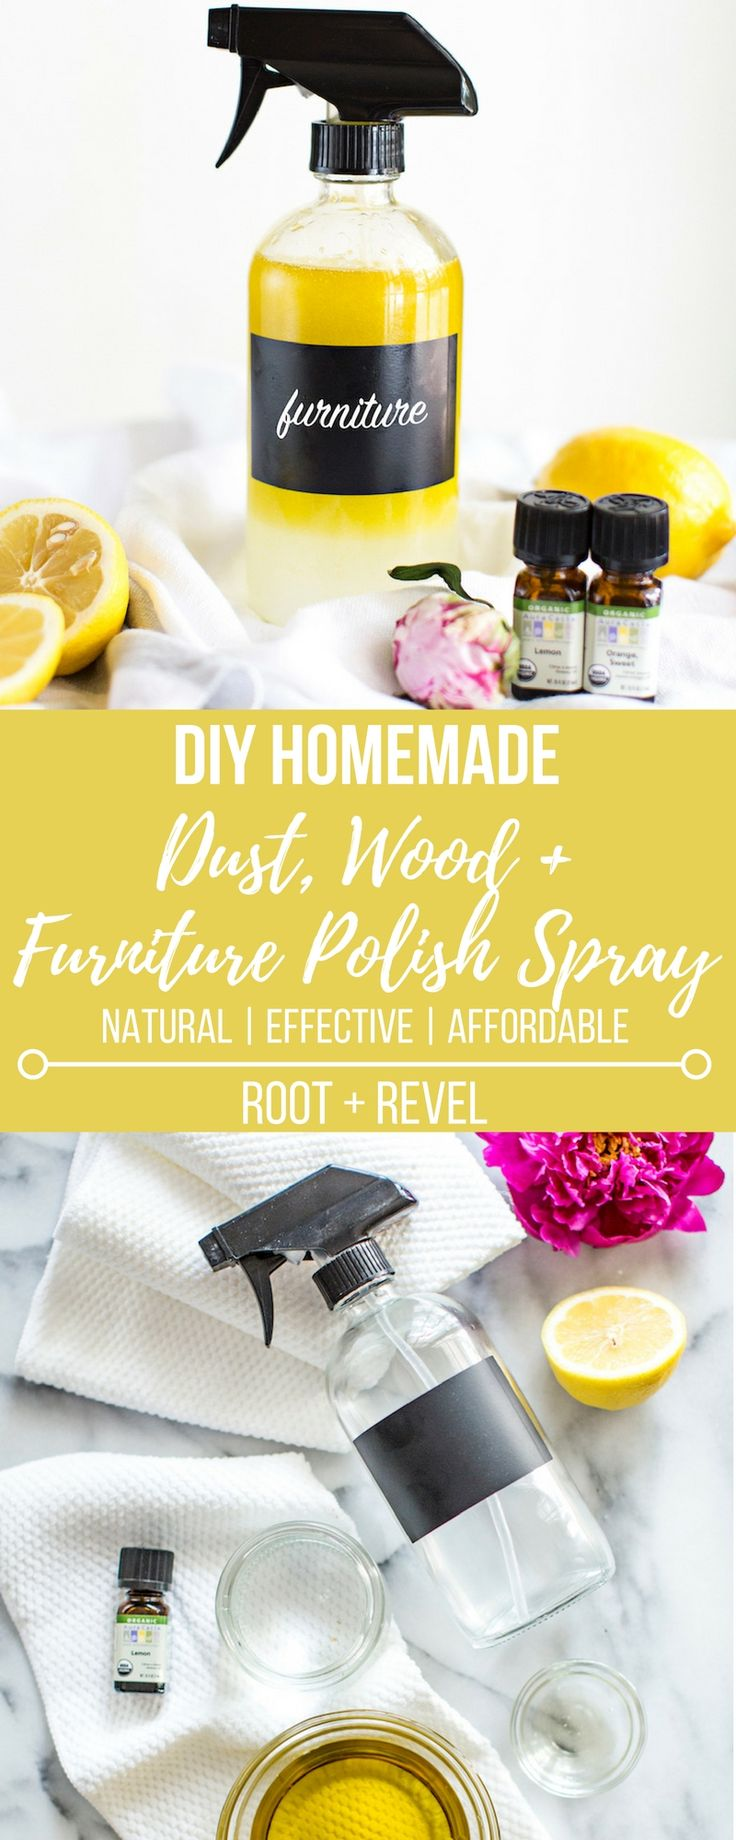 Home Remedies For Cleaning Wood Furniture Creative Remodelling Enchanting 25 Unique Cleaning Wood Ideas On Pinterest  Clean Wood Cleaning . Review